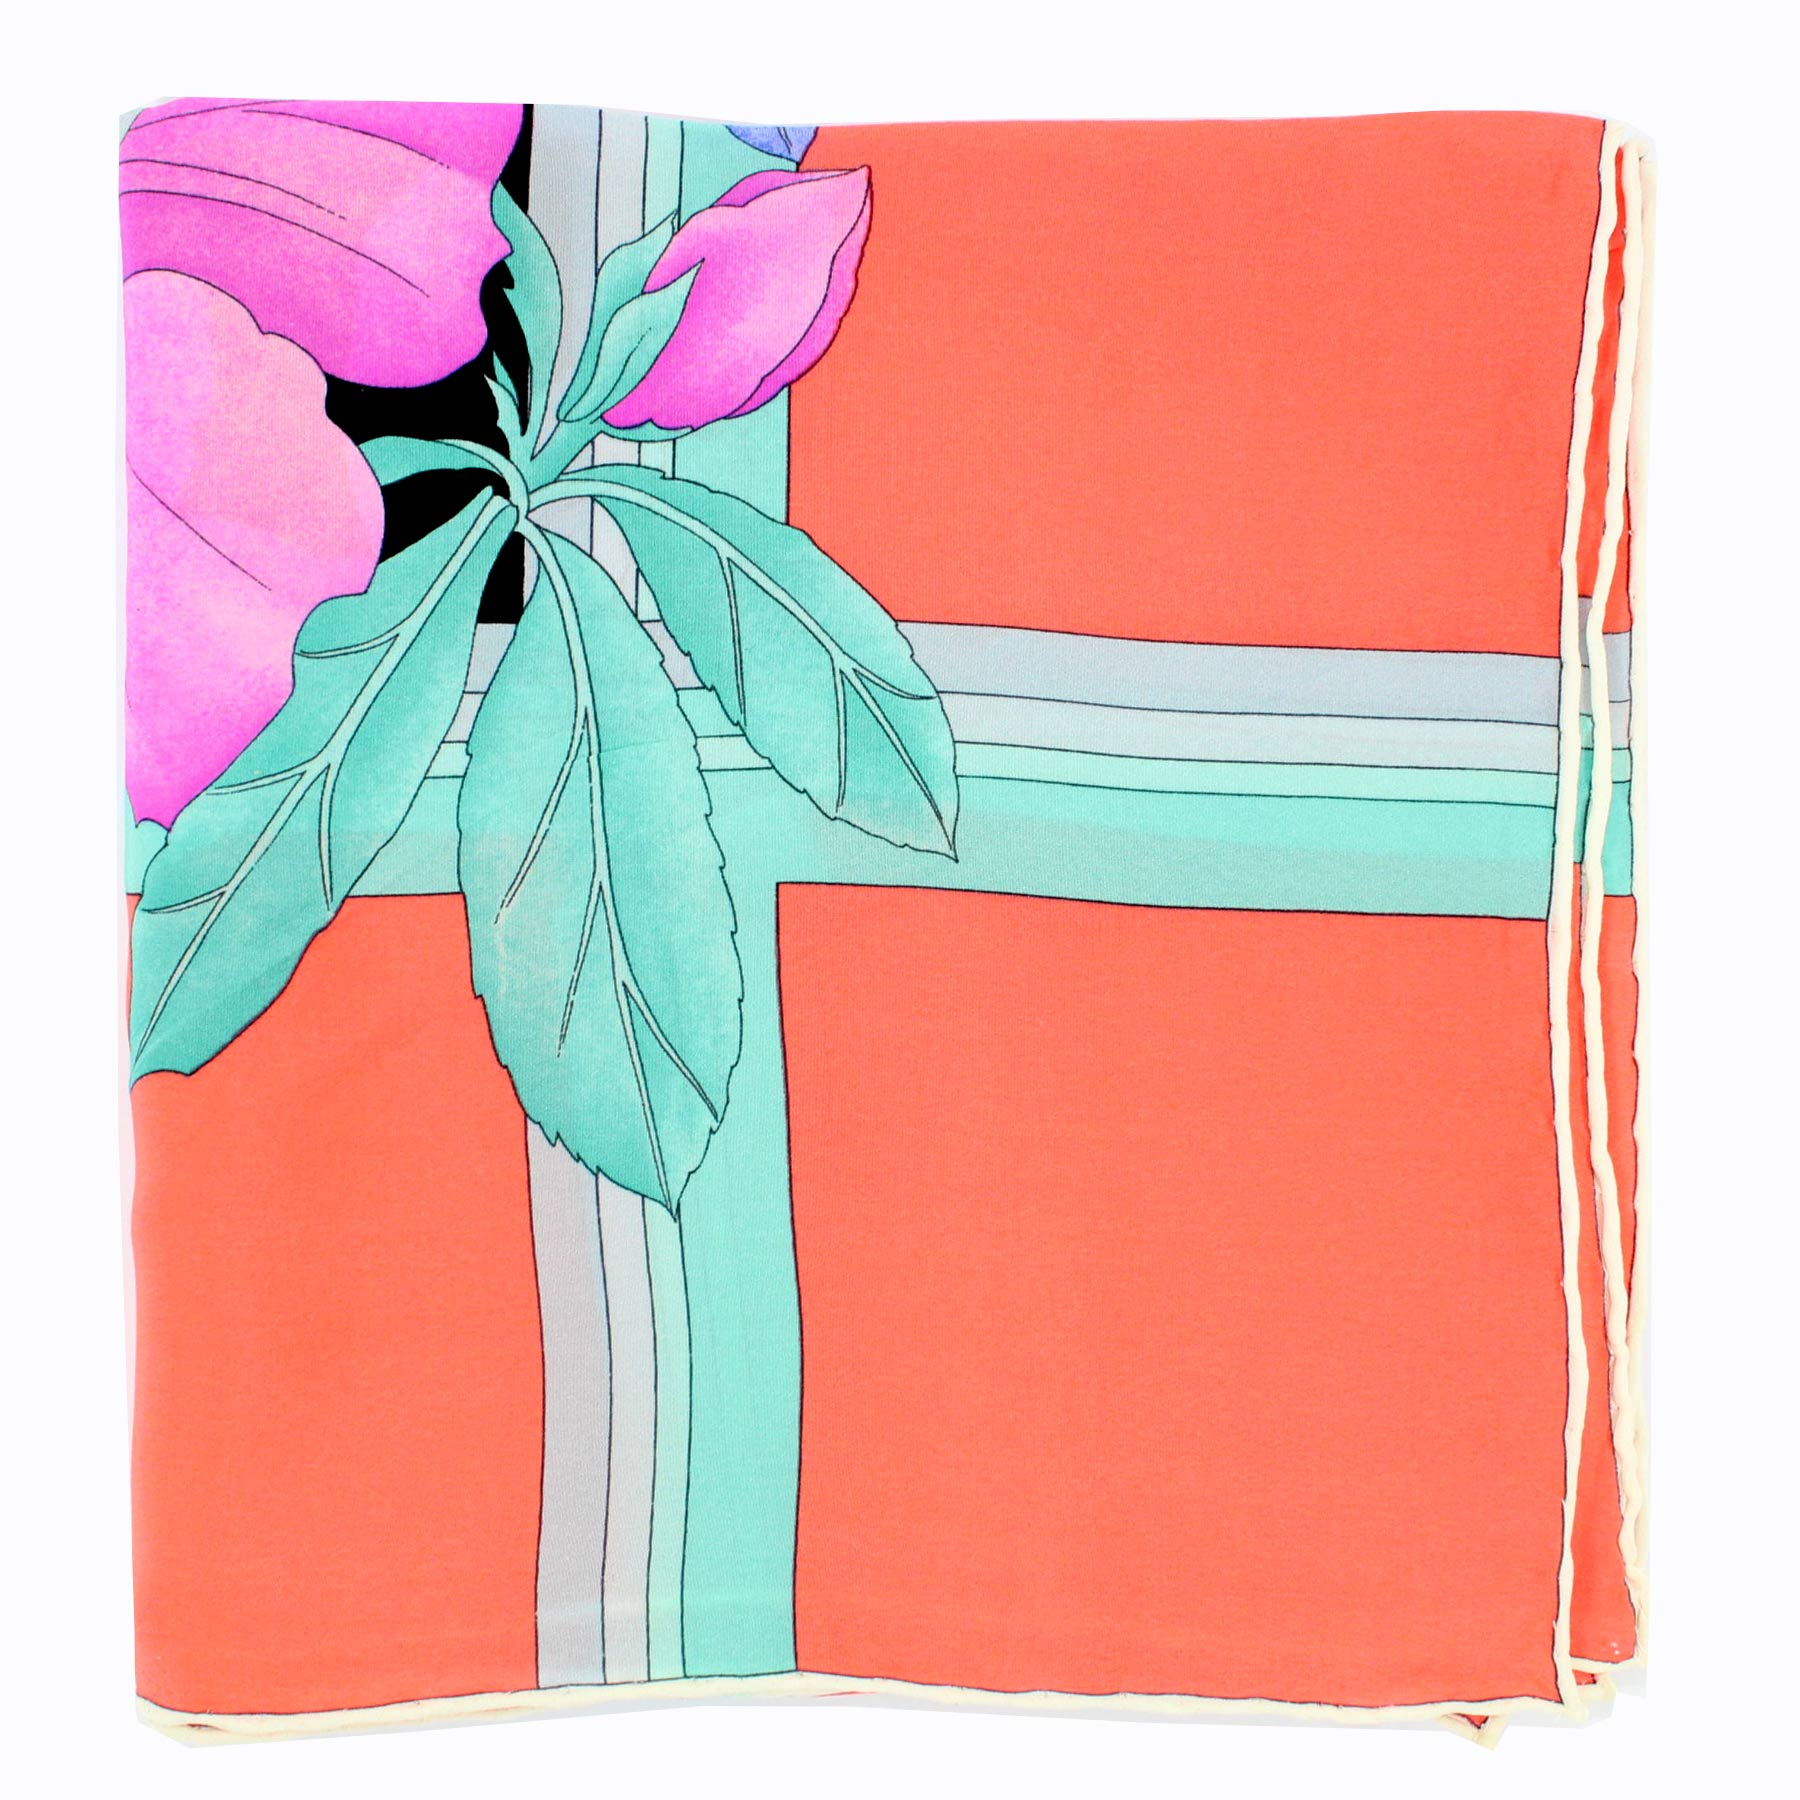 Leonard Scarf Mint Pink Floral - Large Square Silk Scarf SALE